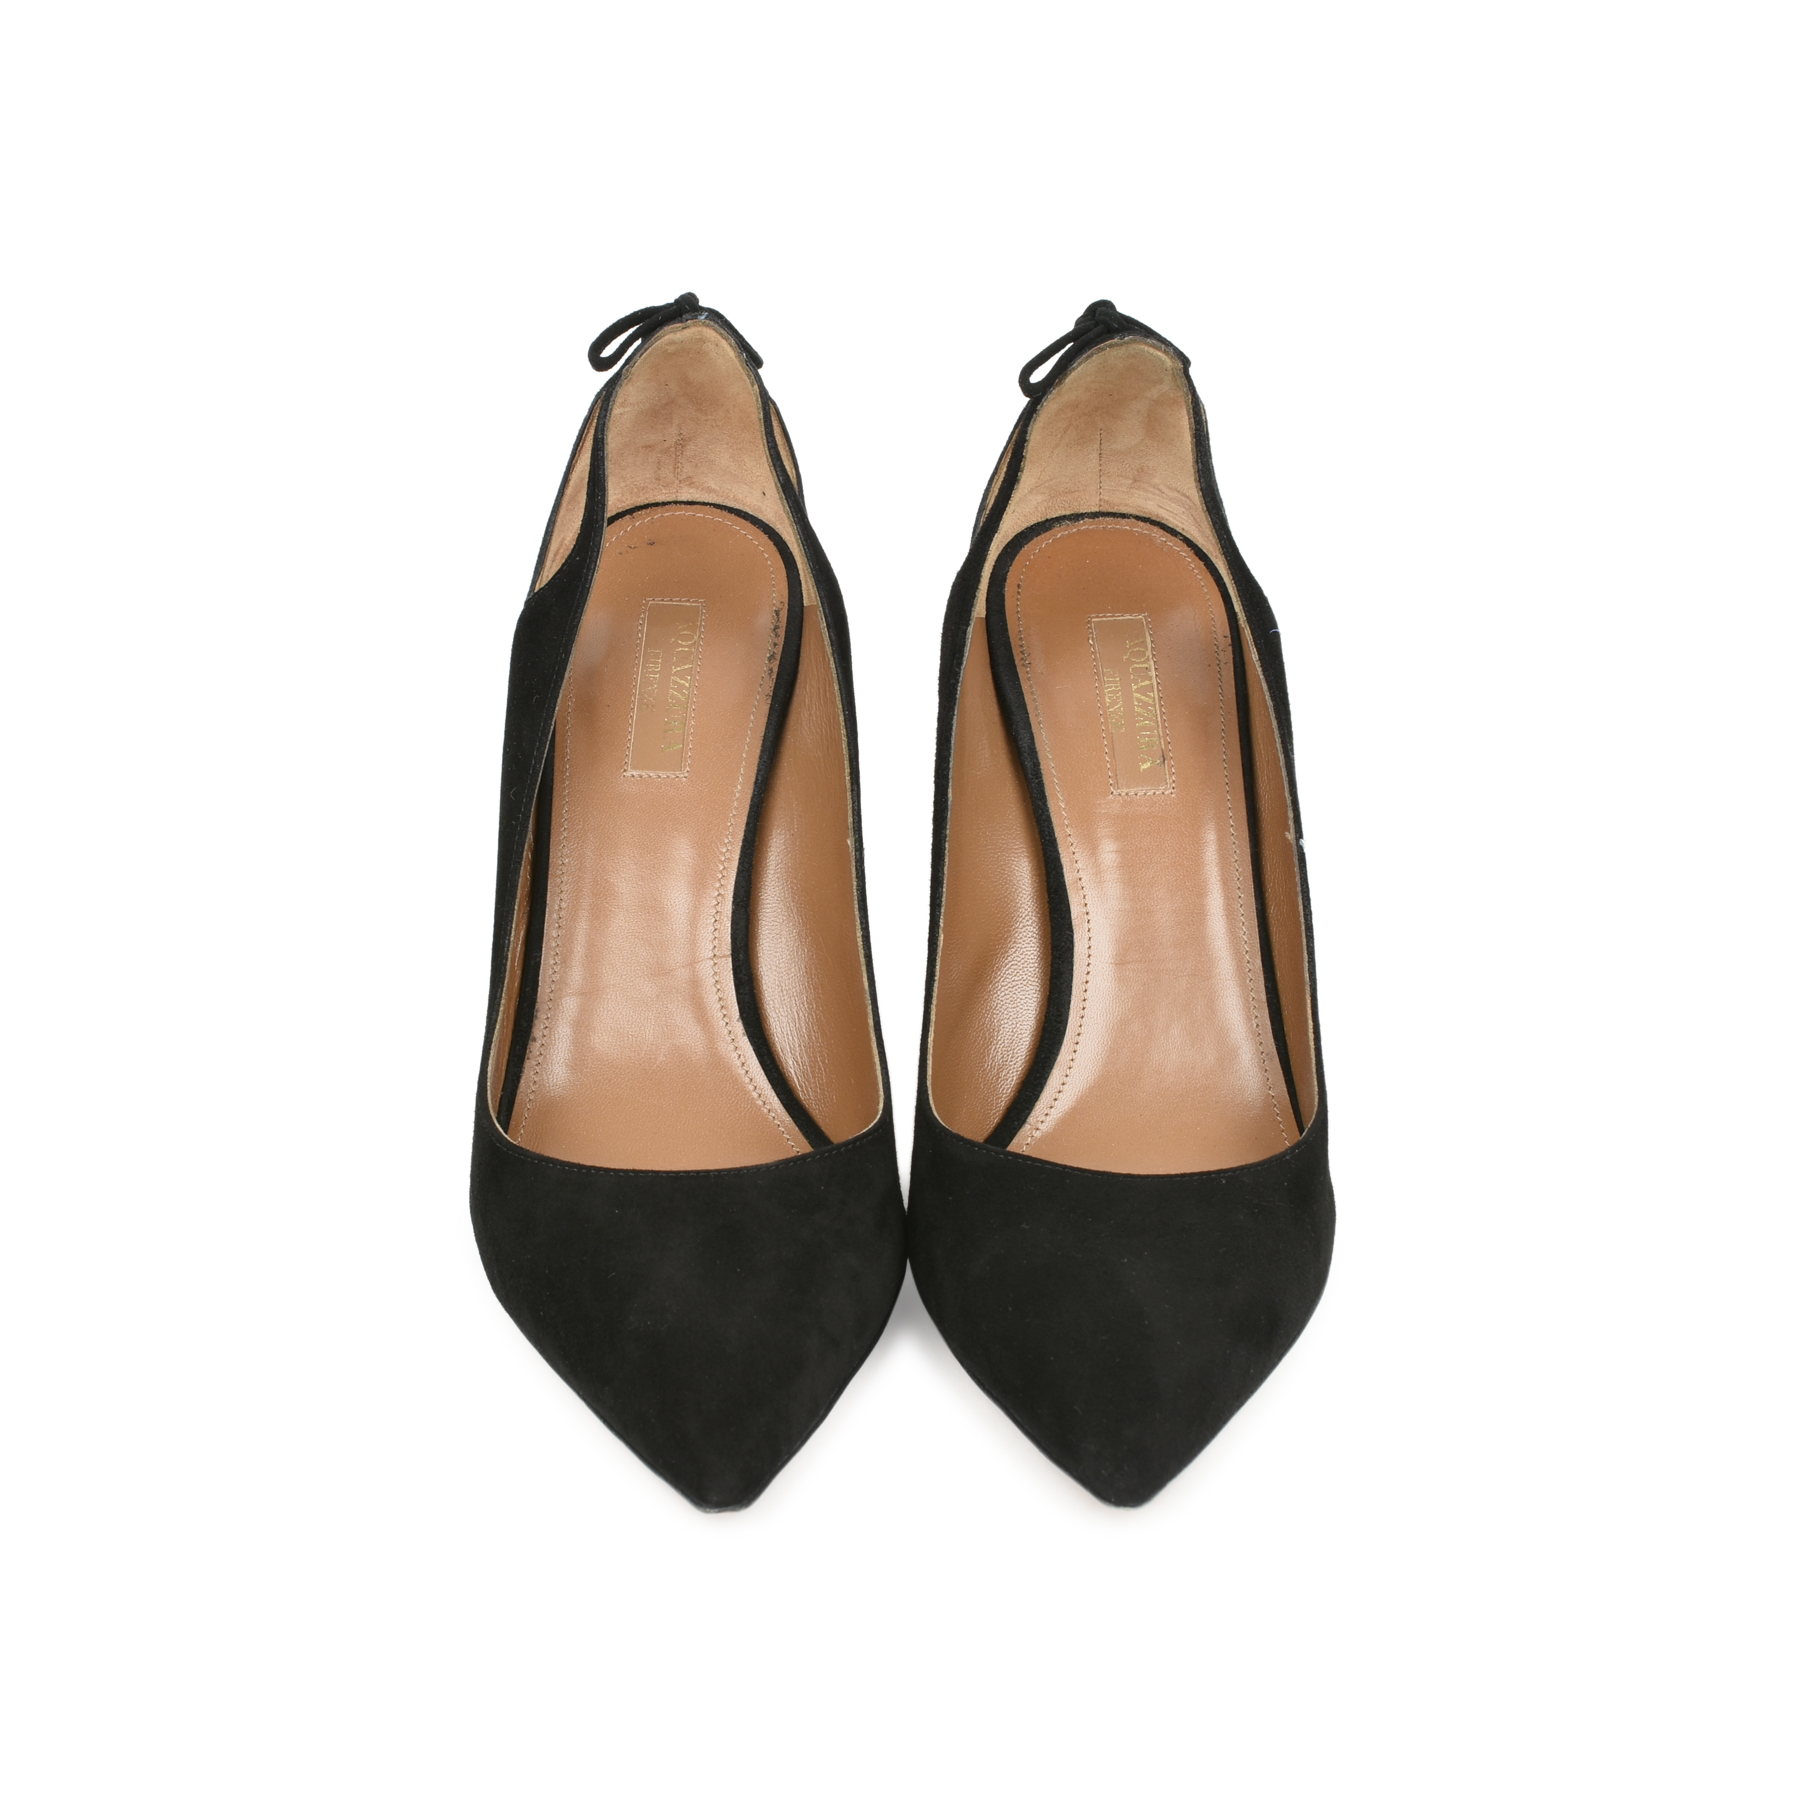 506dbde9790d Authentic Second Hand Aquazzura Forever Marilyn 85 Suede Pumps  (PSS-470-00057)